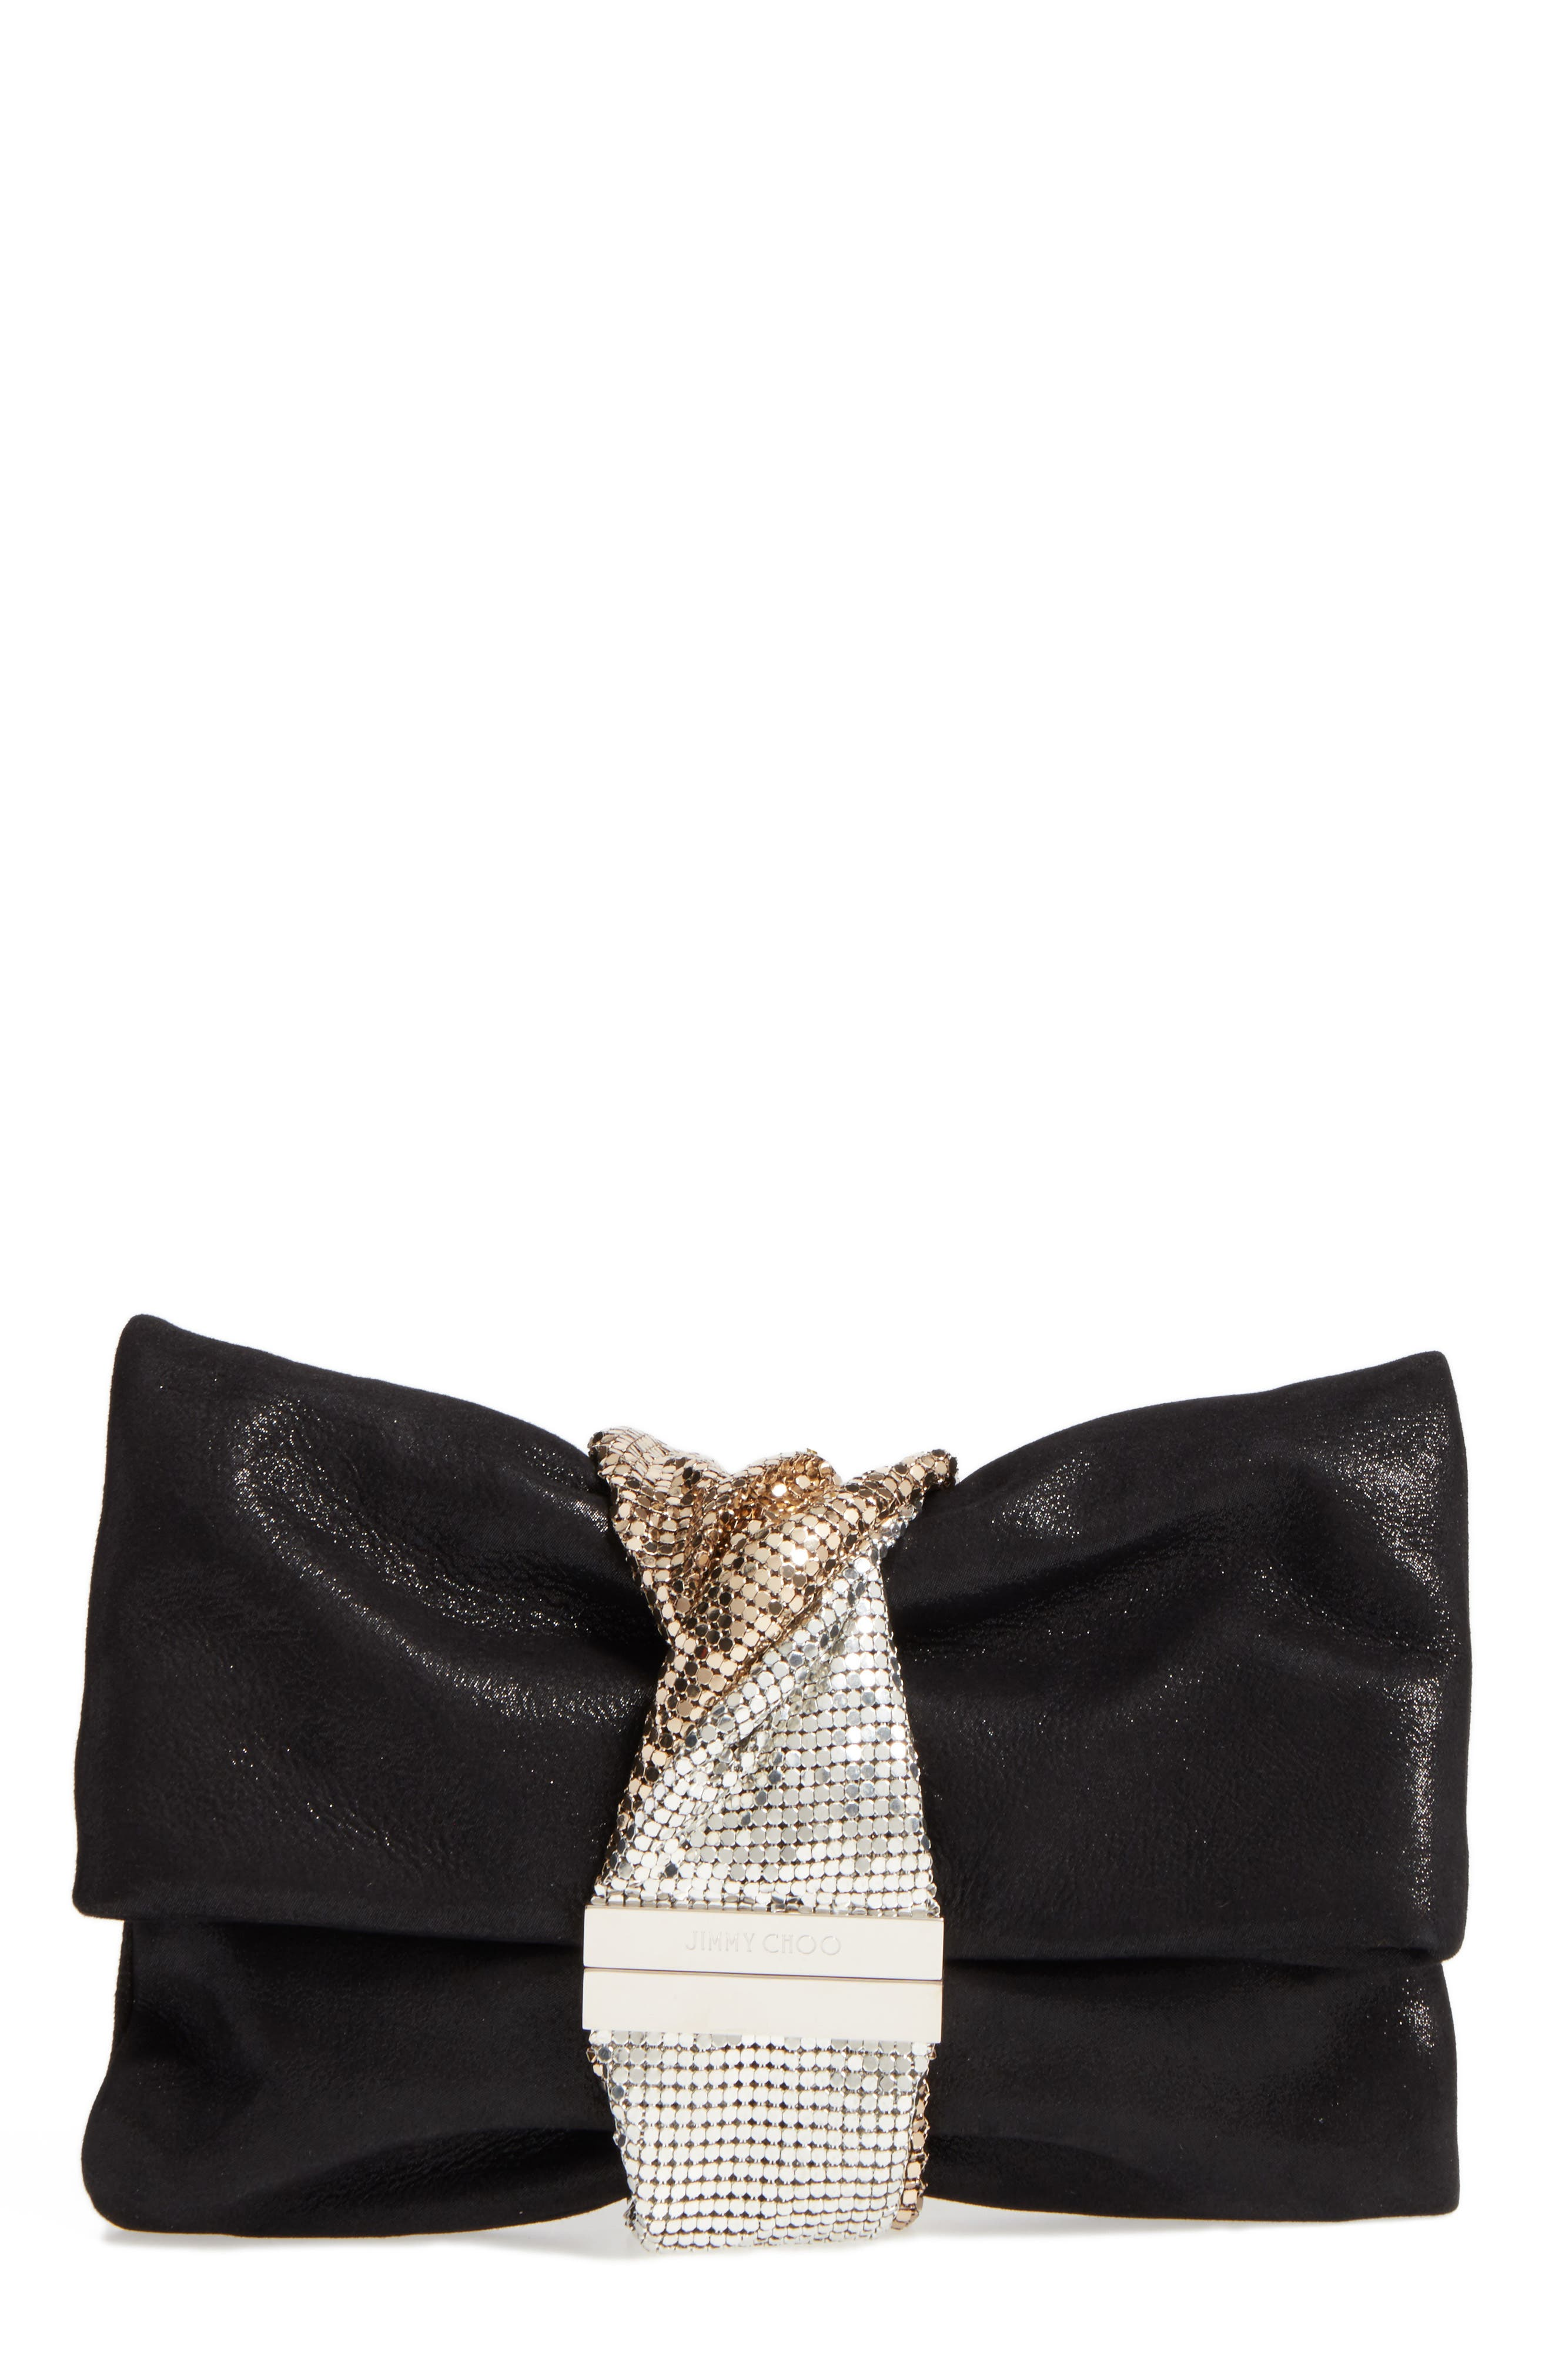 Alternate Image 1 Selected - Jimmy Choo Chandra Shimmer Suede Clutch